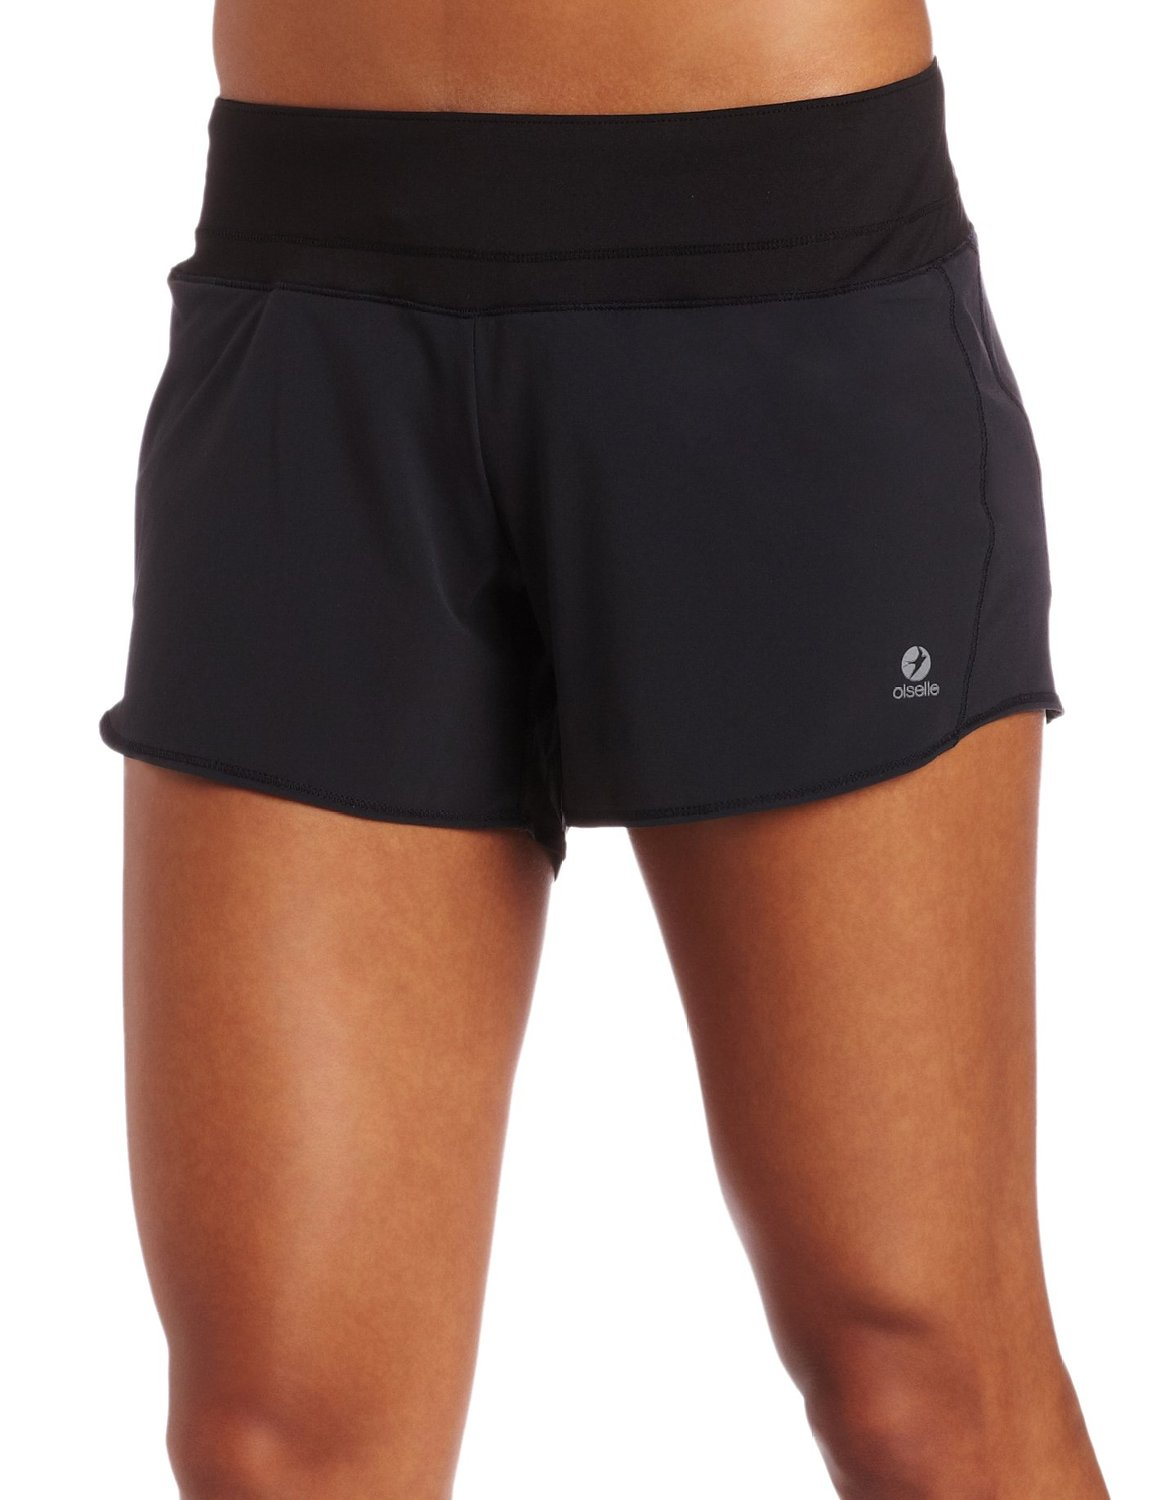 New Summer Shorts Women Sports Shorts Gym Workout Waistband Skinny Short. Baleaf Women's Active Yoga Lounge Bermuda Shorts with Pockets. by Baleaf. $ - $ $ 21 $ 22 99 Prime. FREE Shipping on eligible orders. Some sizes/colors are Prime eligible. out of 5 stars